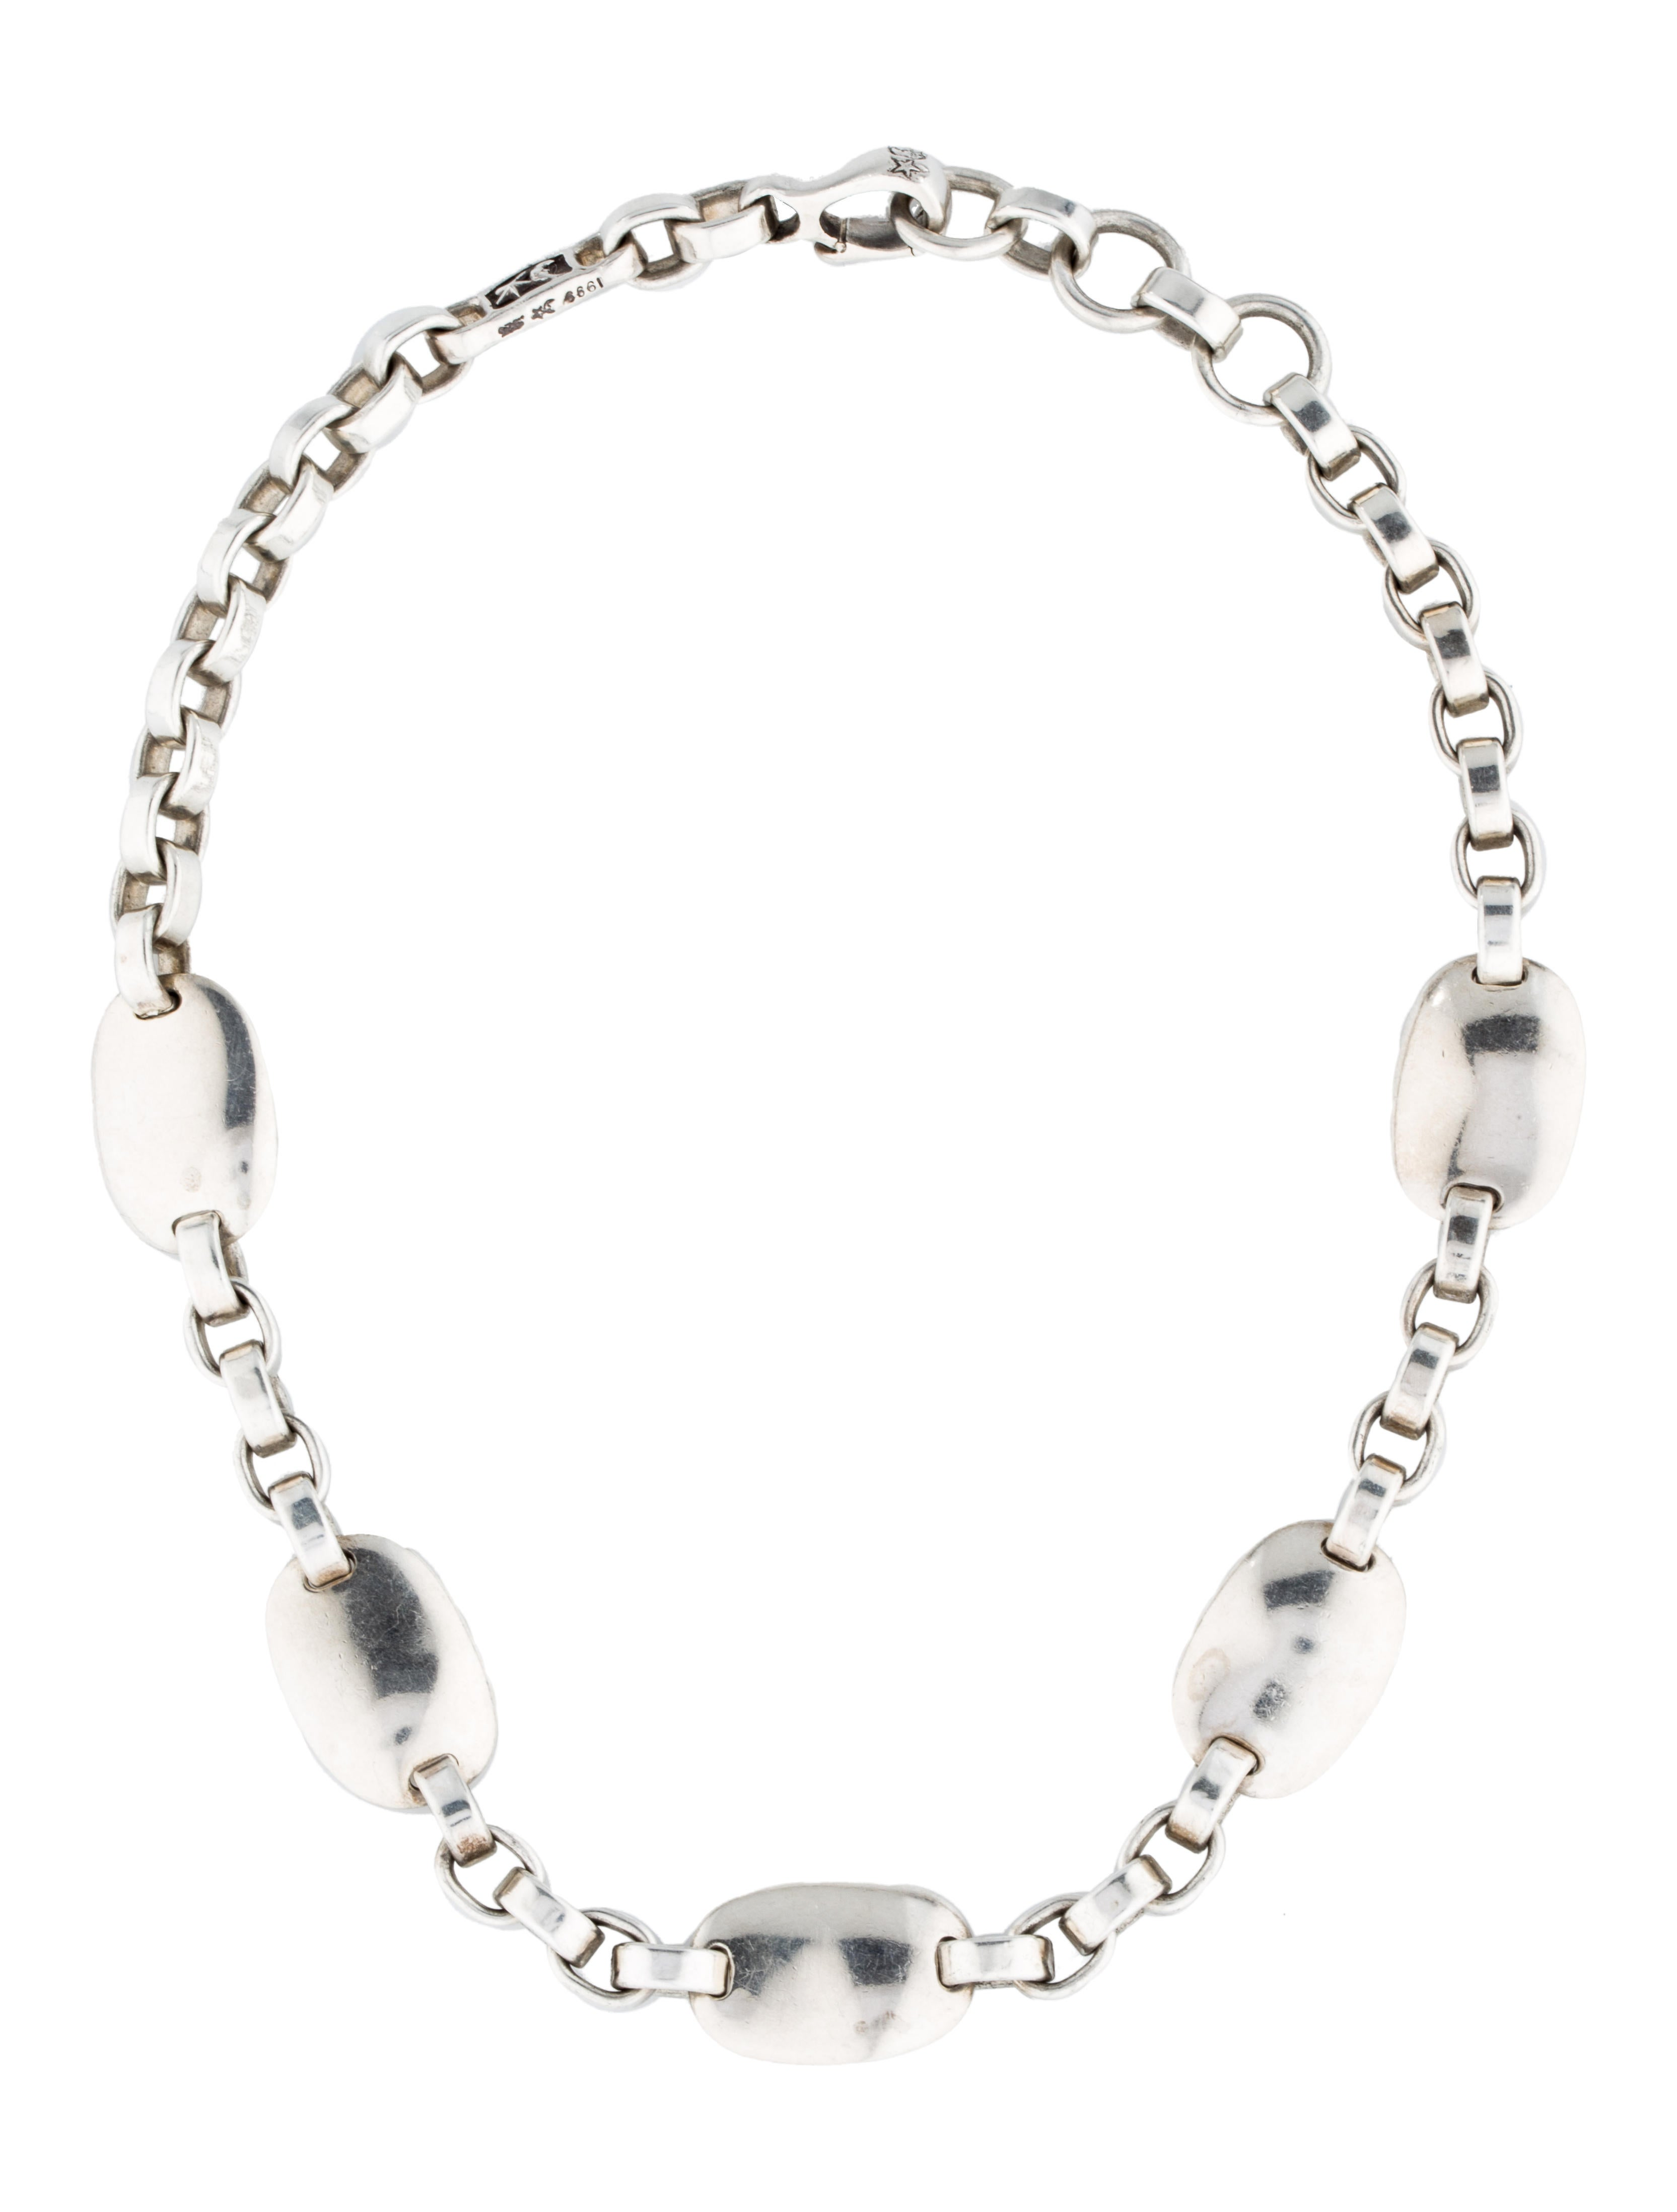 Barry kieselstein cord sterling link necklace necklaces for Barry kieselstein cord jewelry